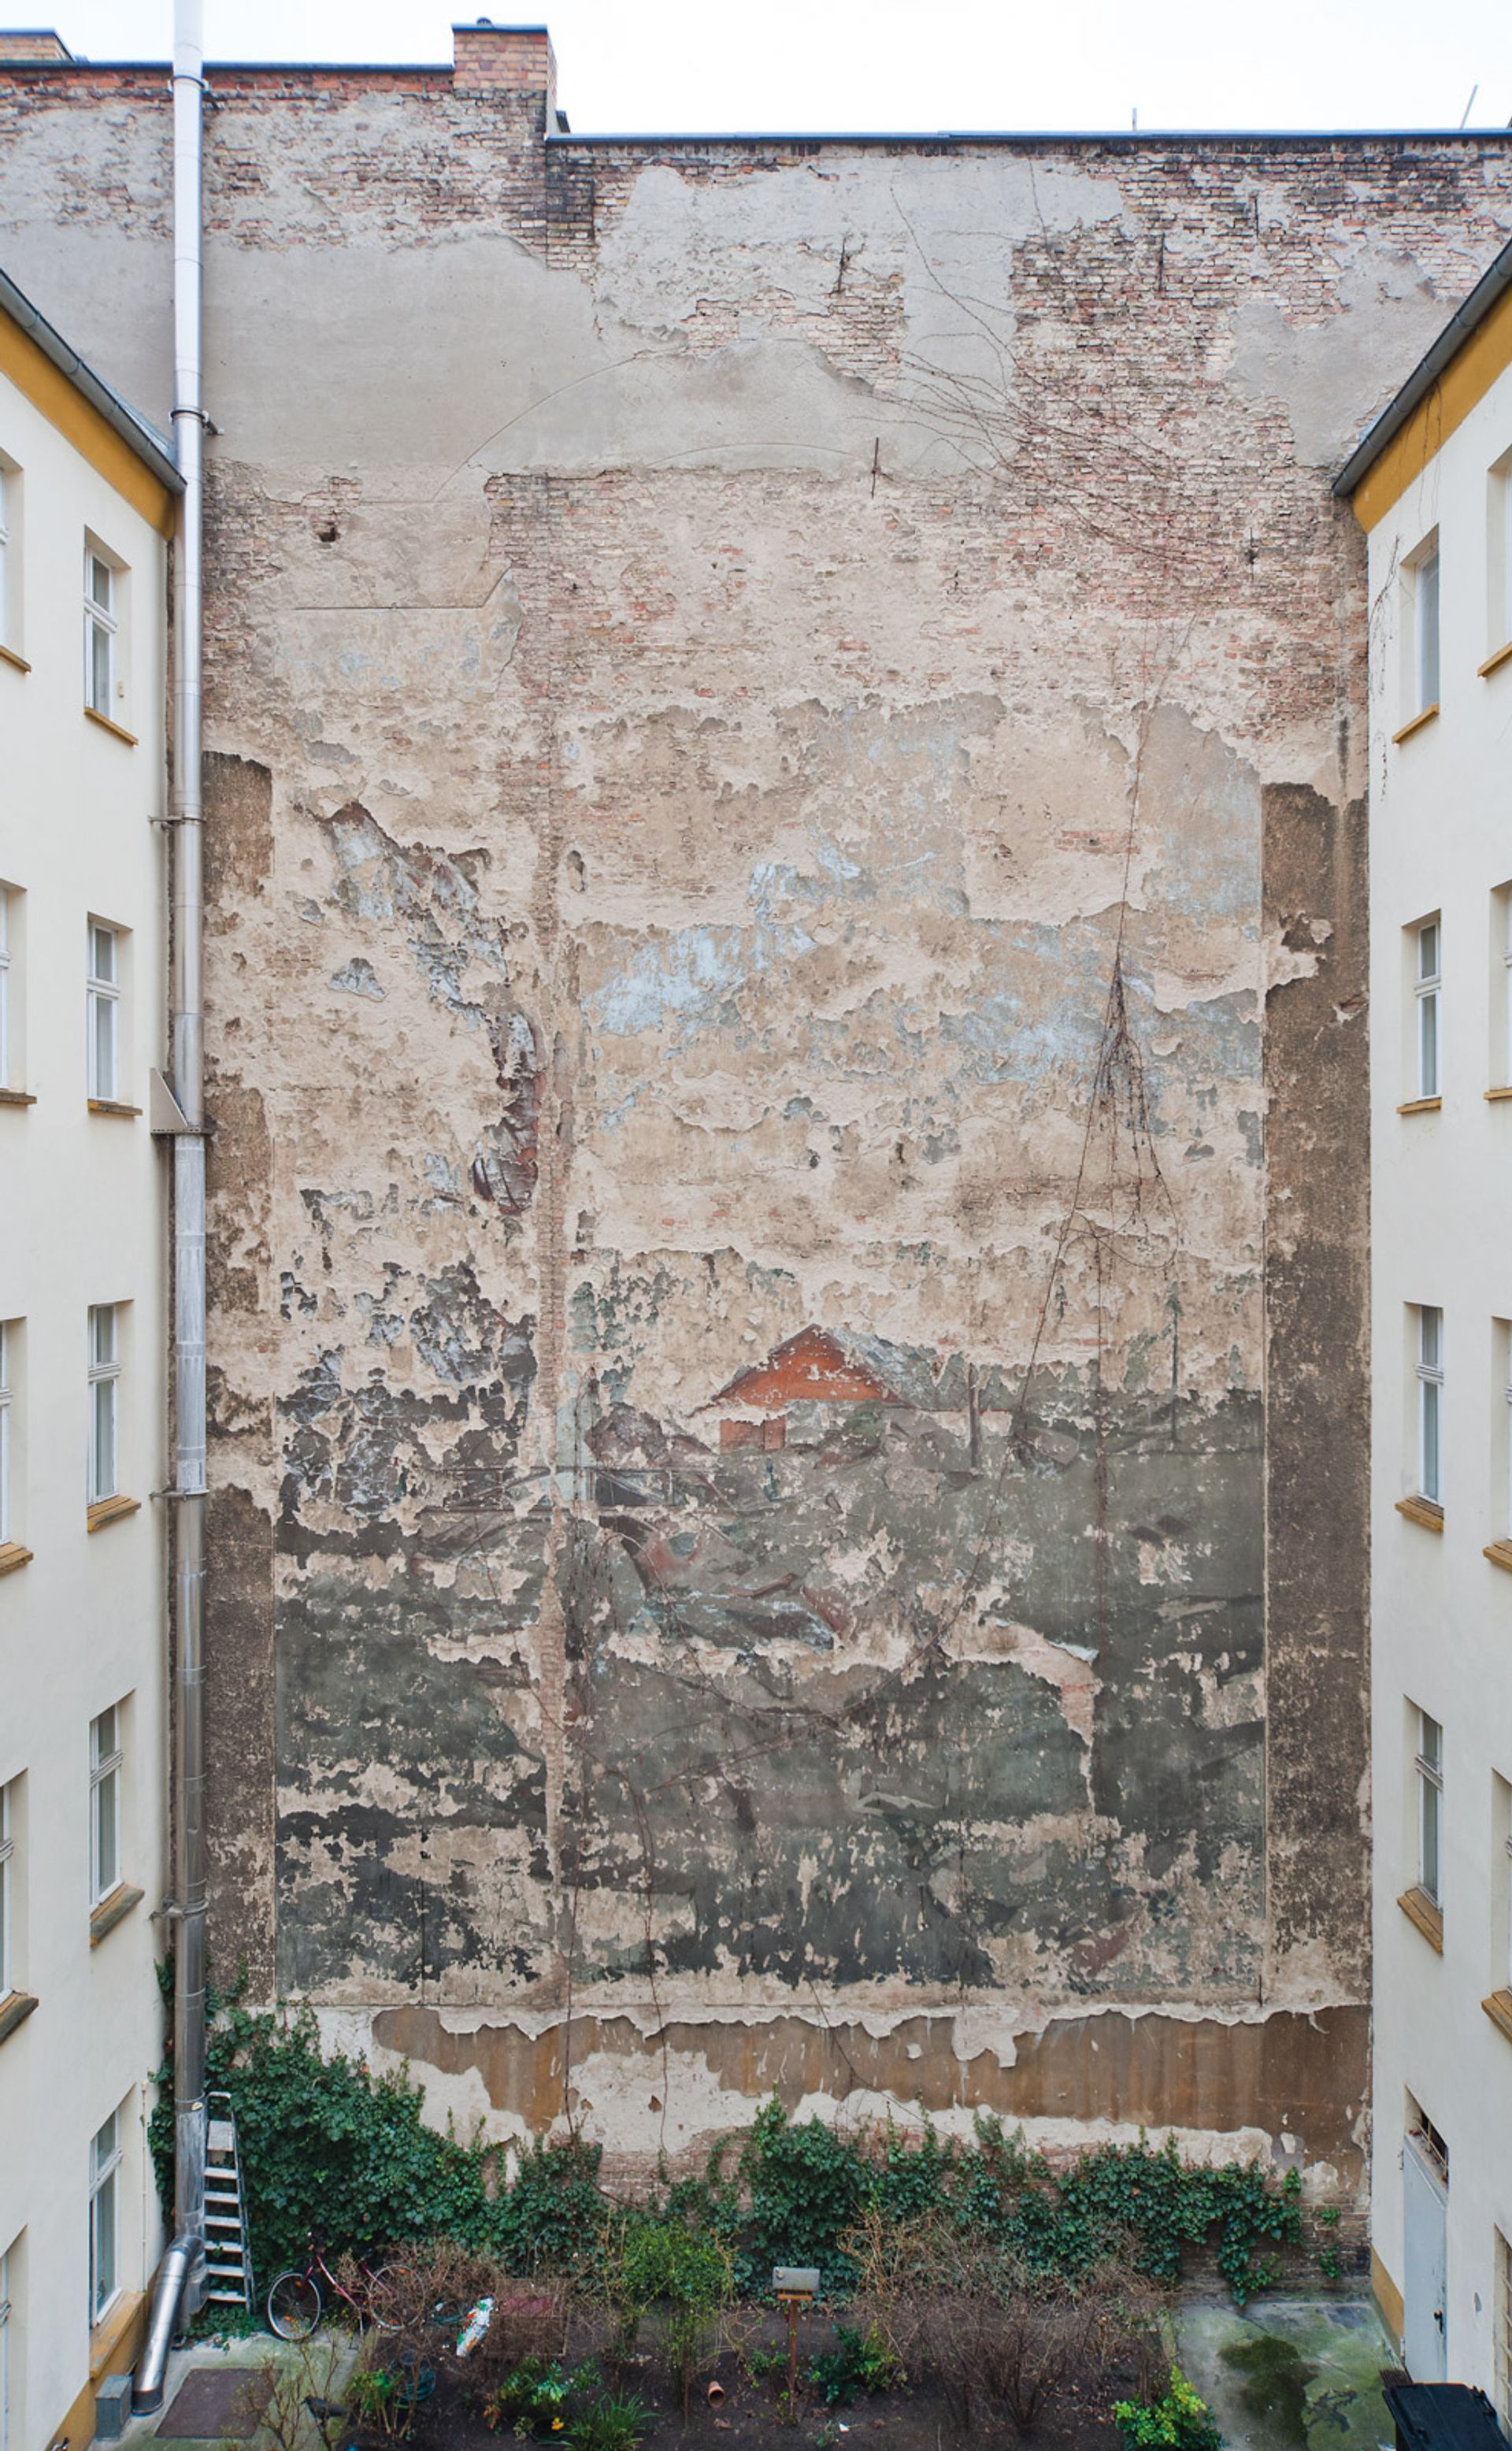 One of the remaining courtyard murals in central Berlin that will be restored Wolfgang Bittner